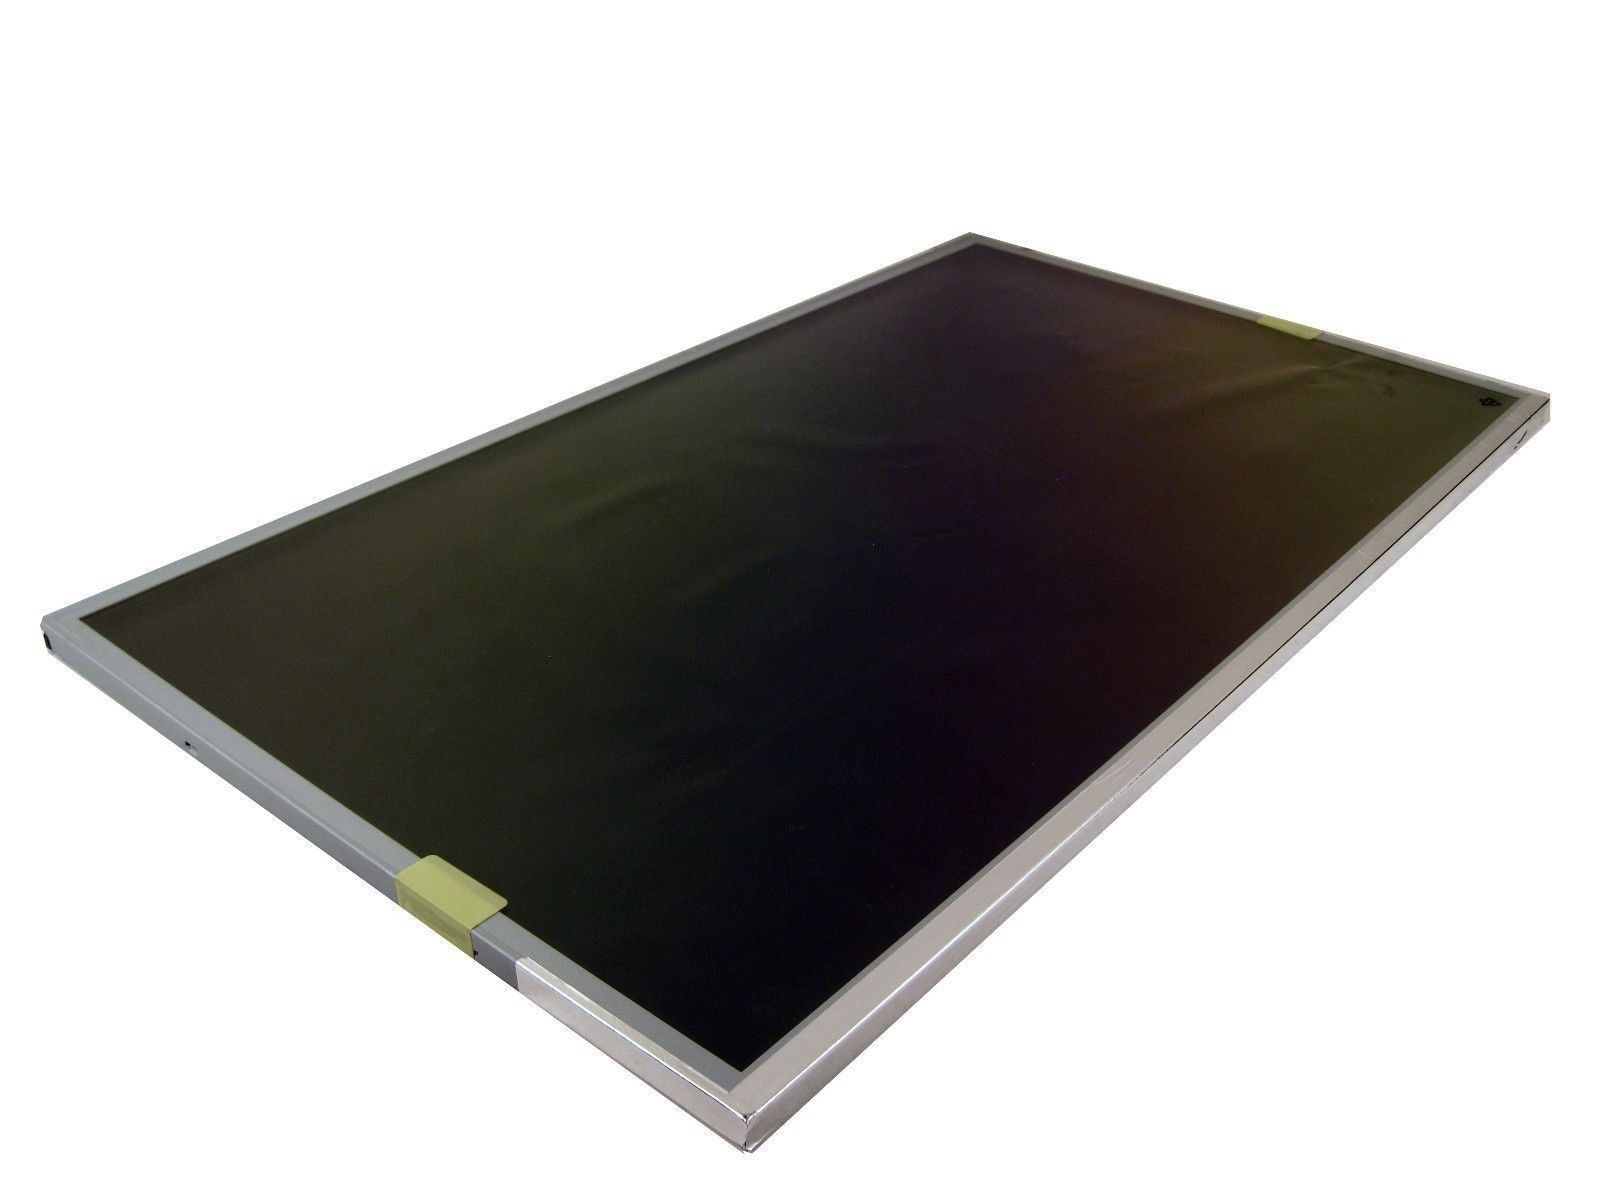 "LG 0VDX0 LM230WF5, 23"" Panel Non Touch, Incl For Dell Inspiron ONE 2310 Lenovo"